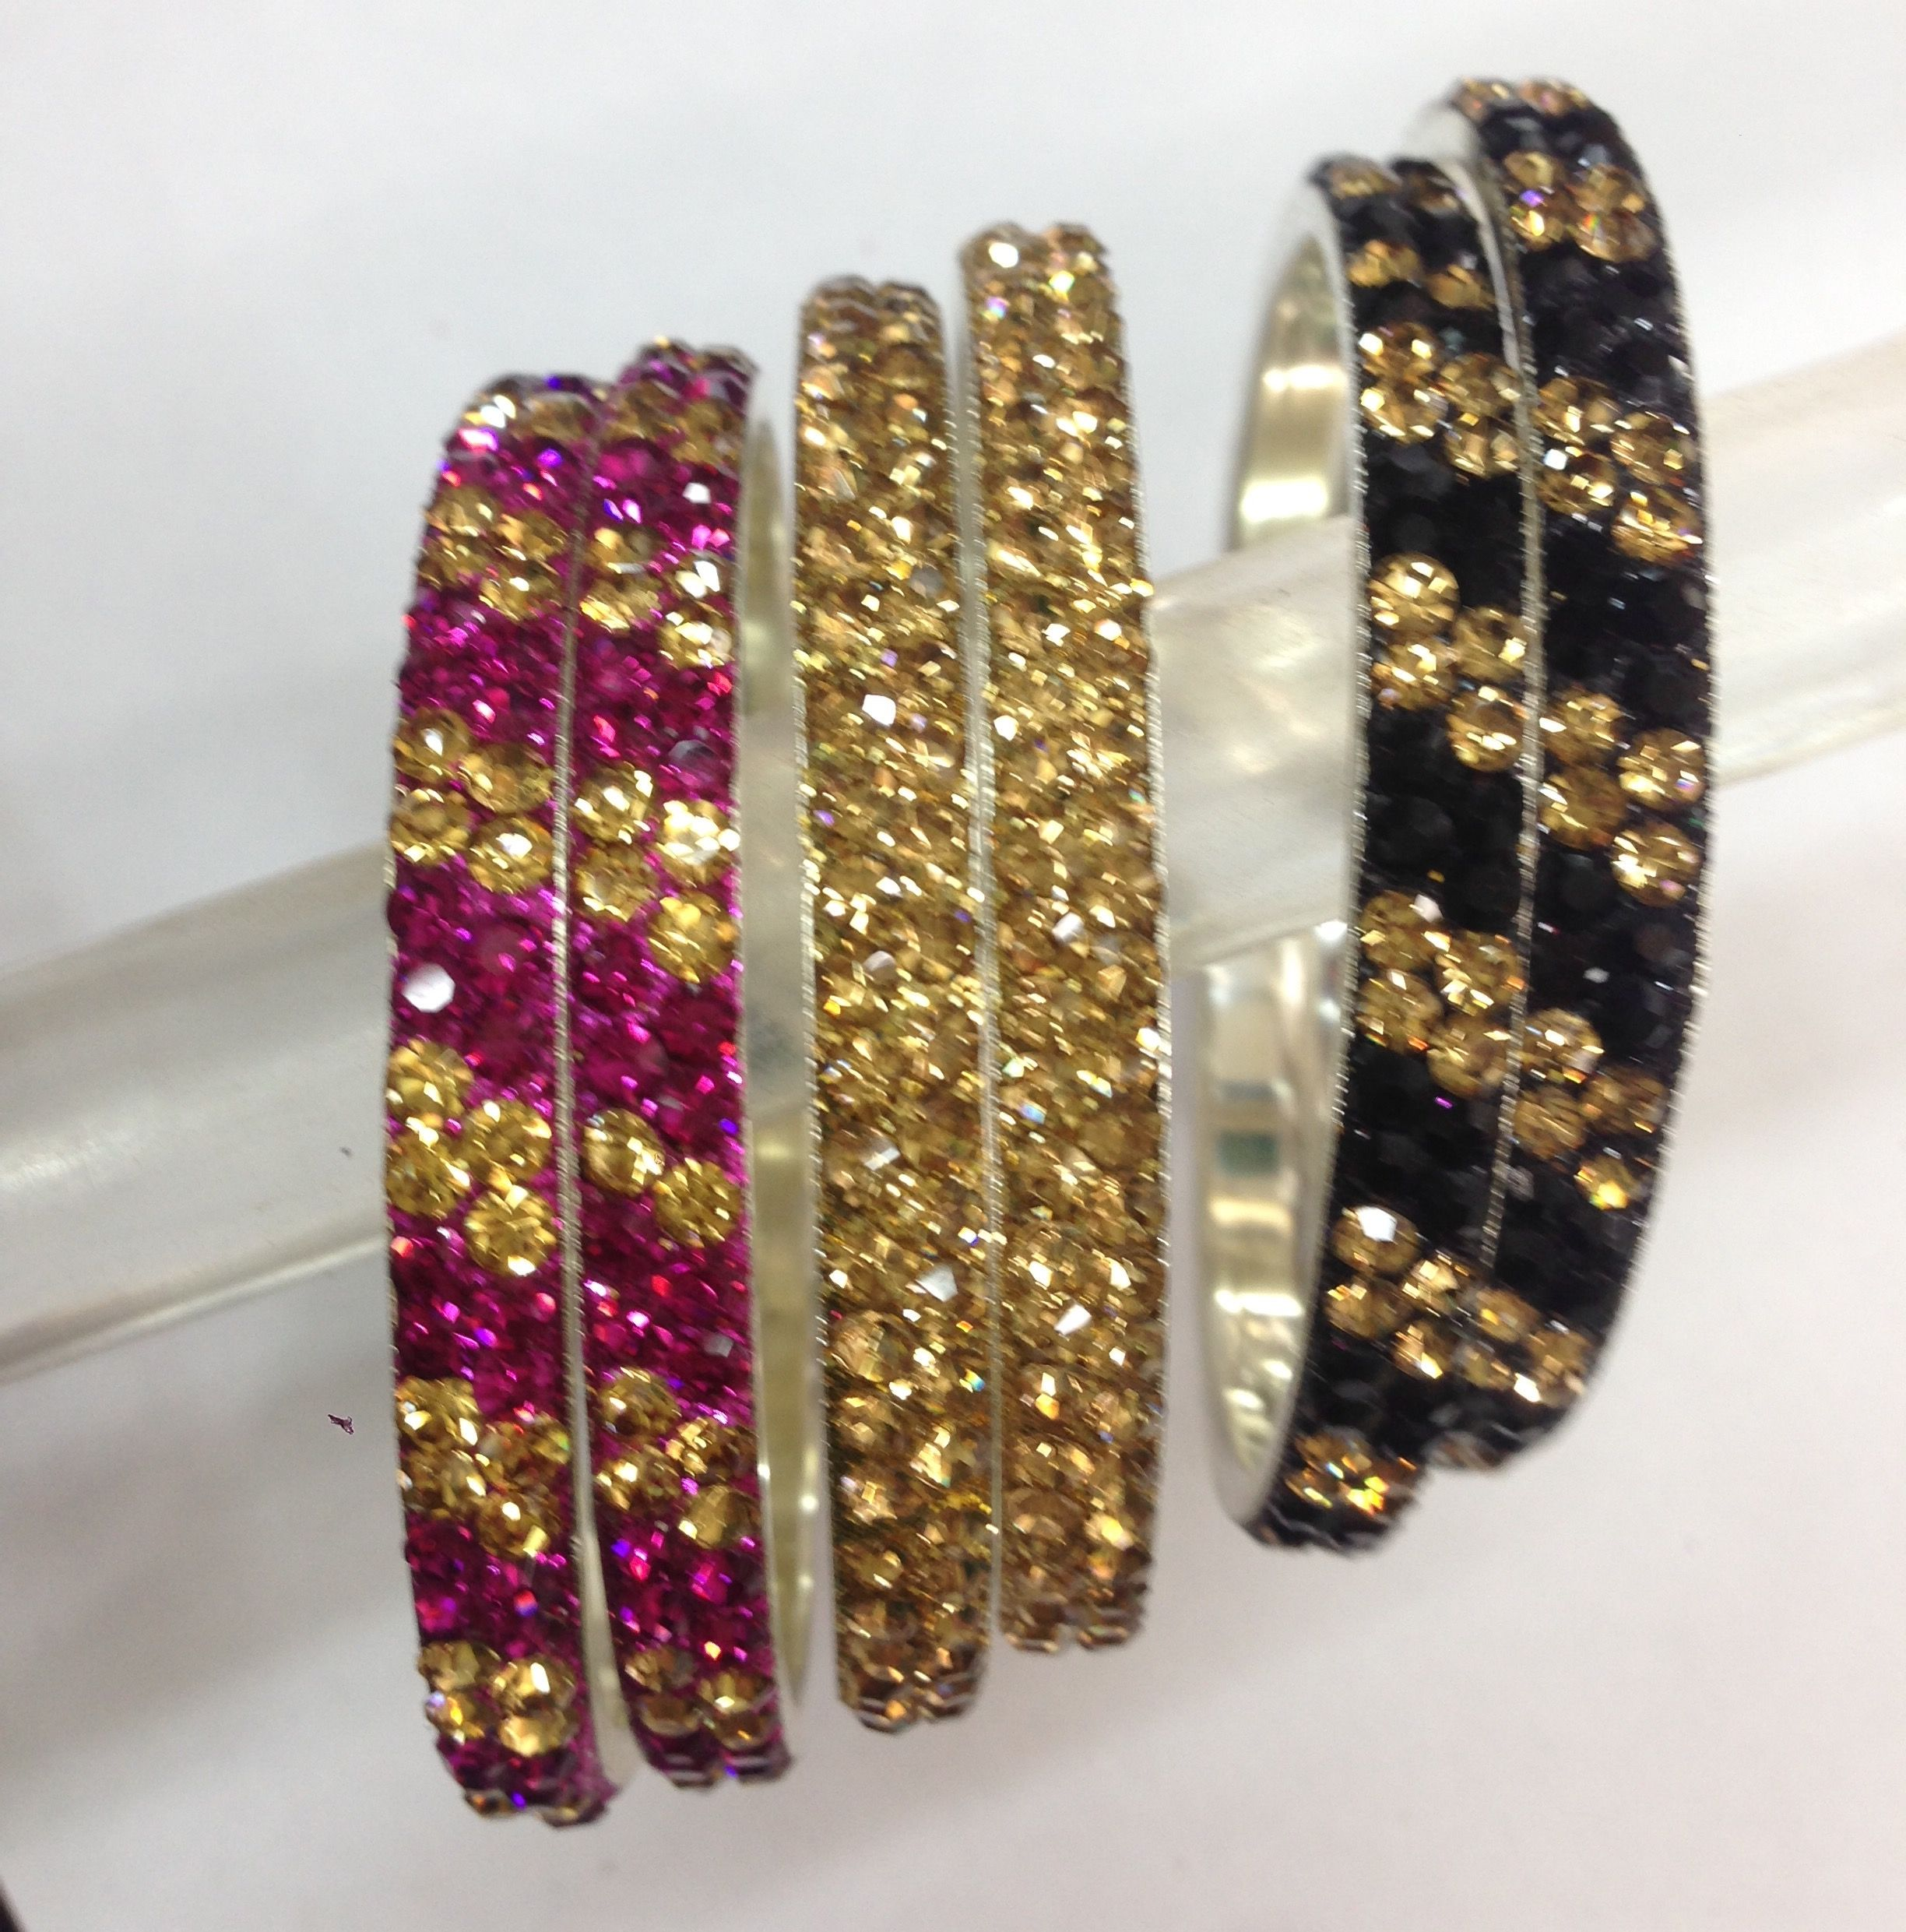 original online shopping voonik gold india regular collections wear metal plated designer bangles